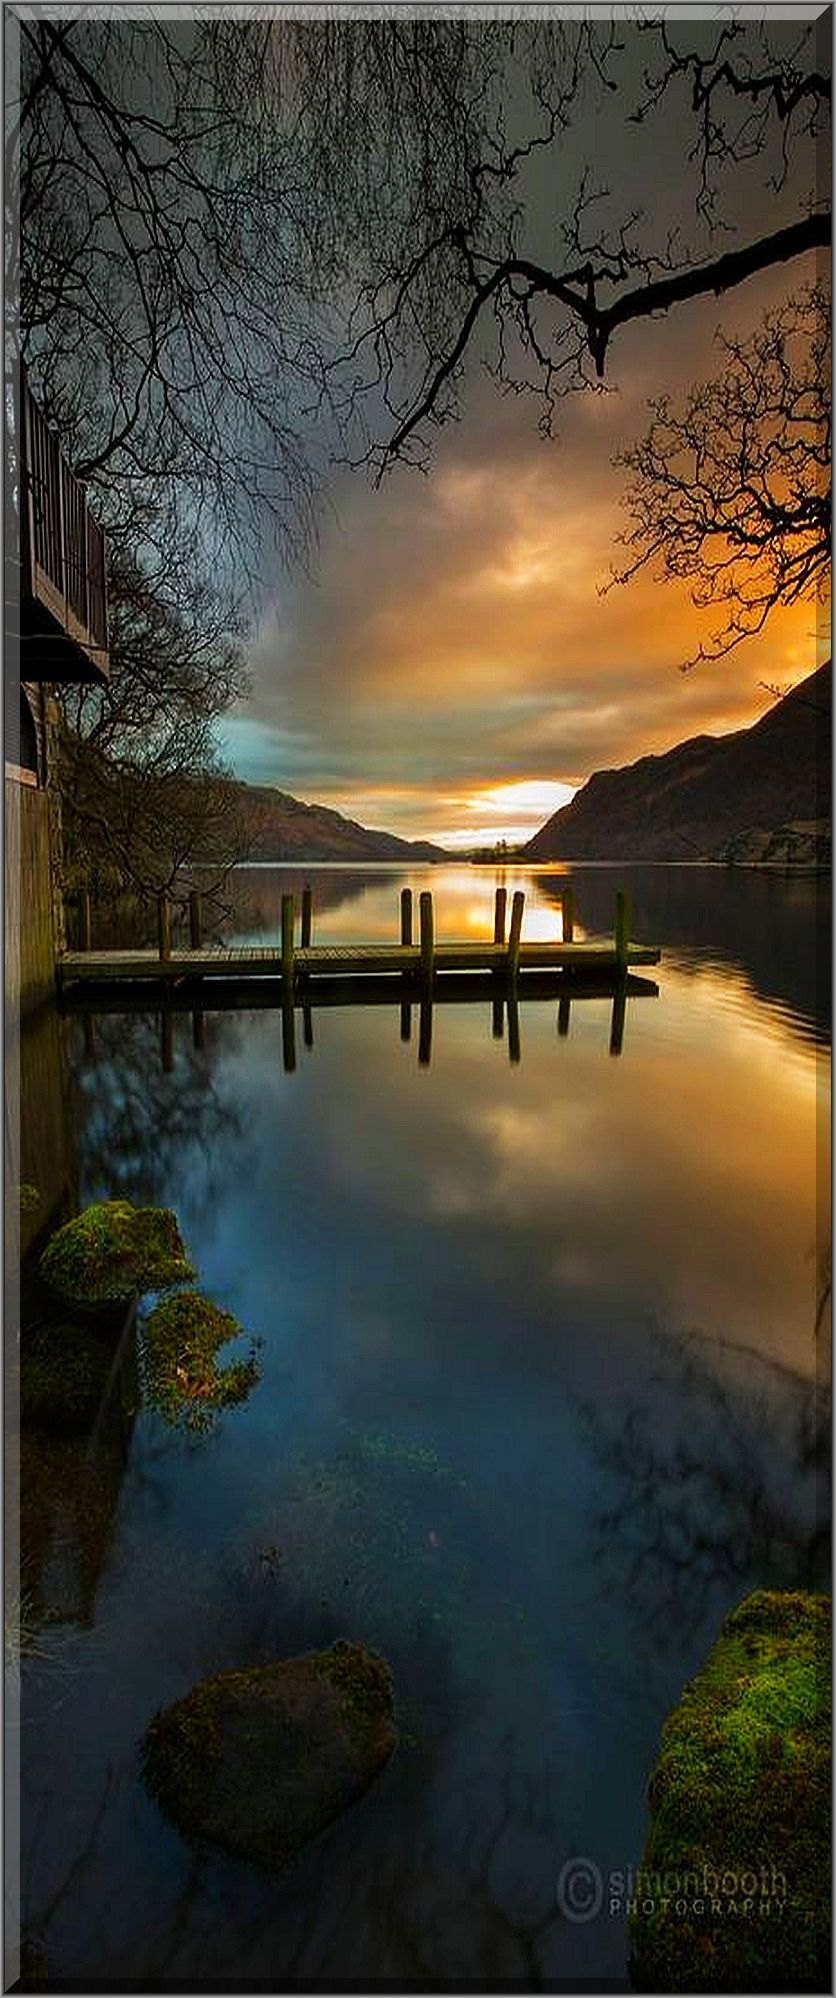 Ullswater Boathouse Lake District National Park UK England - The beauty of south korea captured in stunning reflective landscape photography